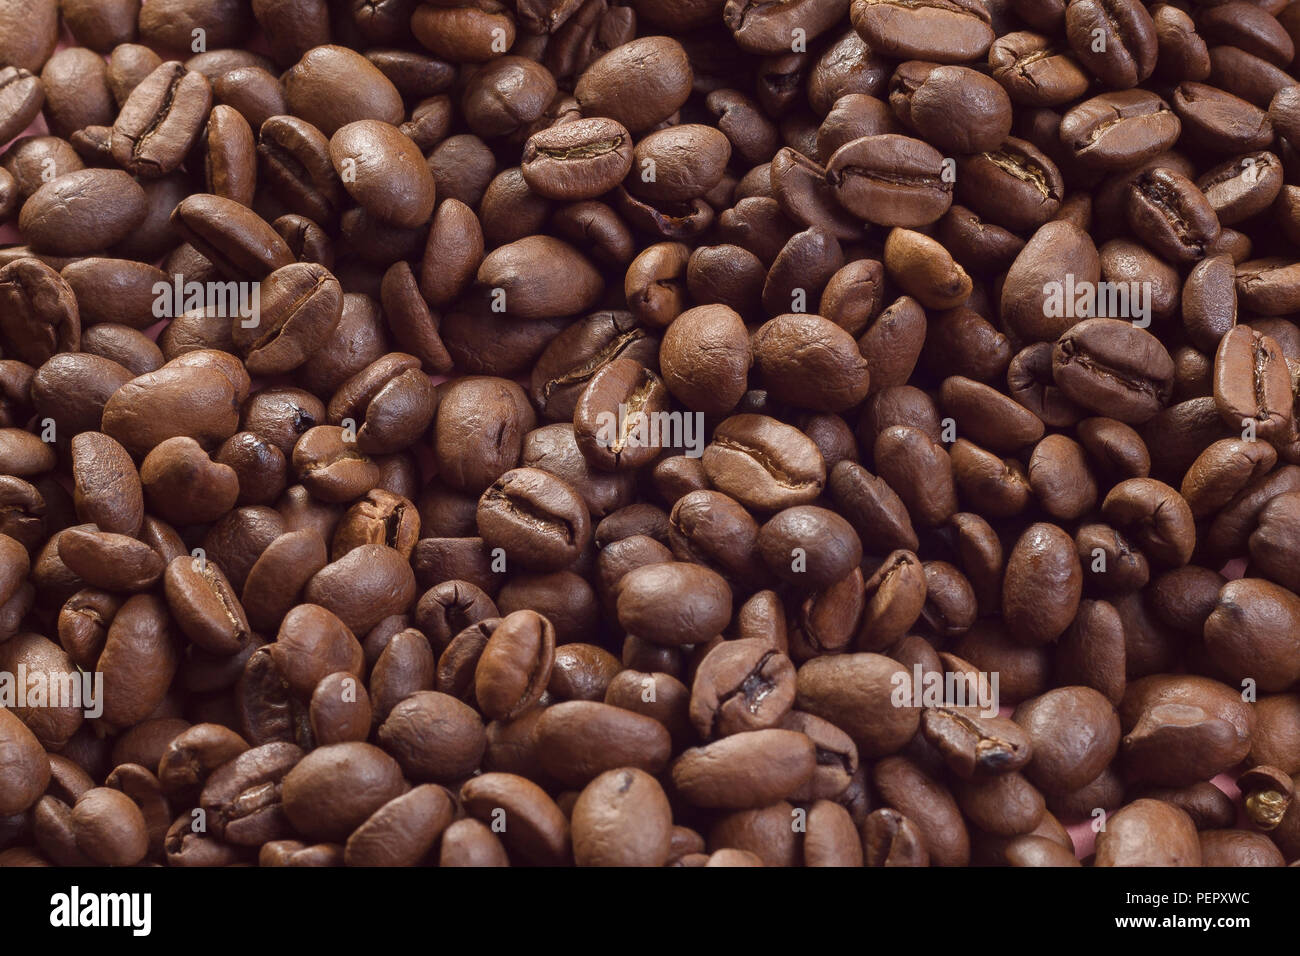 Lots of coffee beans website background textspace - Stock Image